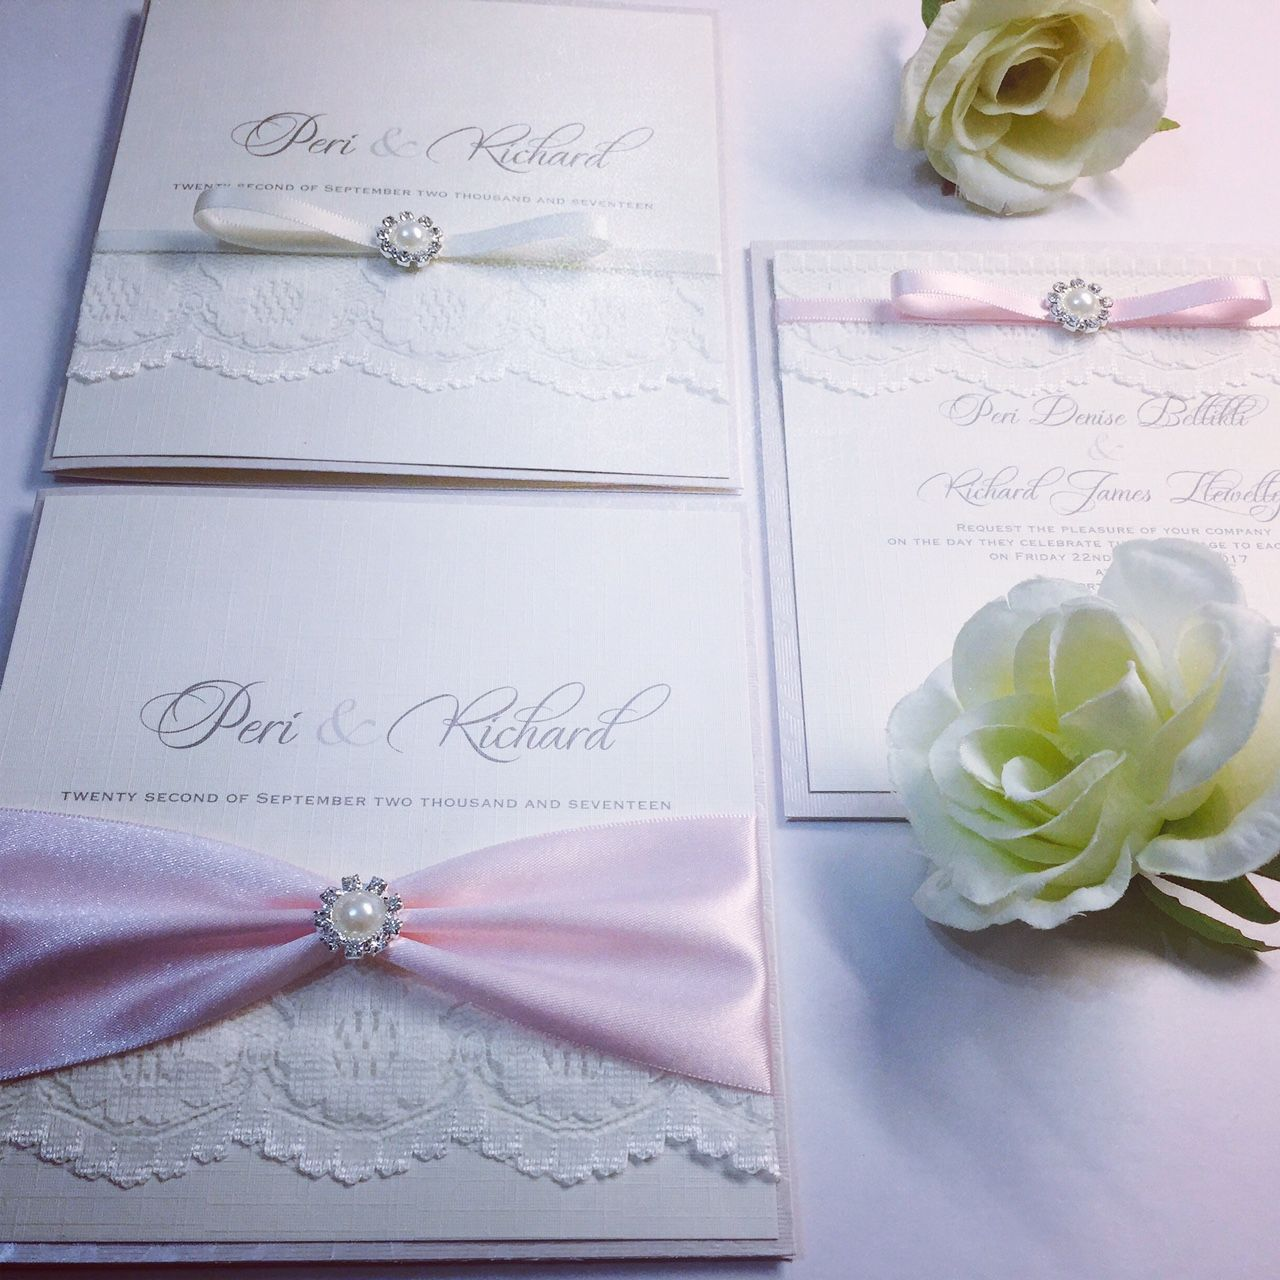 Petite pearl - Elegant invitations with small pearls